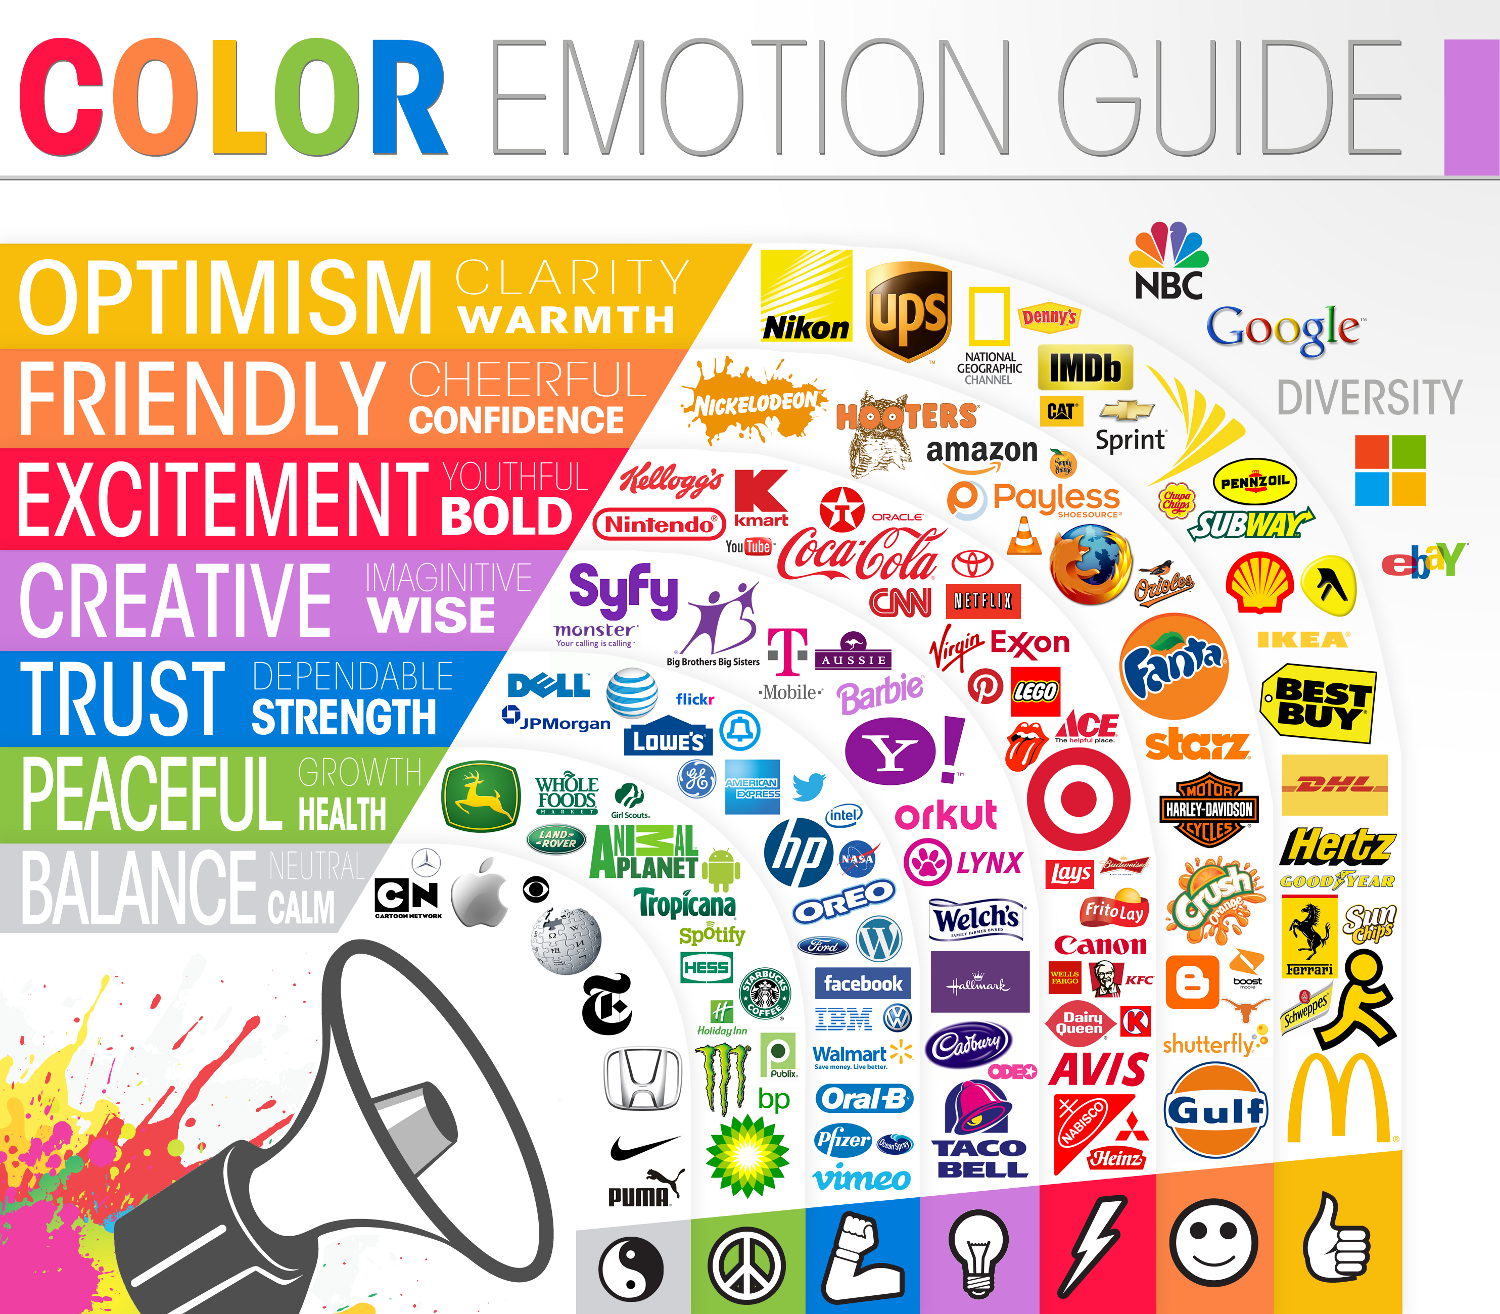 Picture of color emotion guide